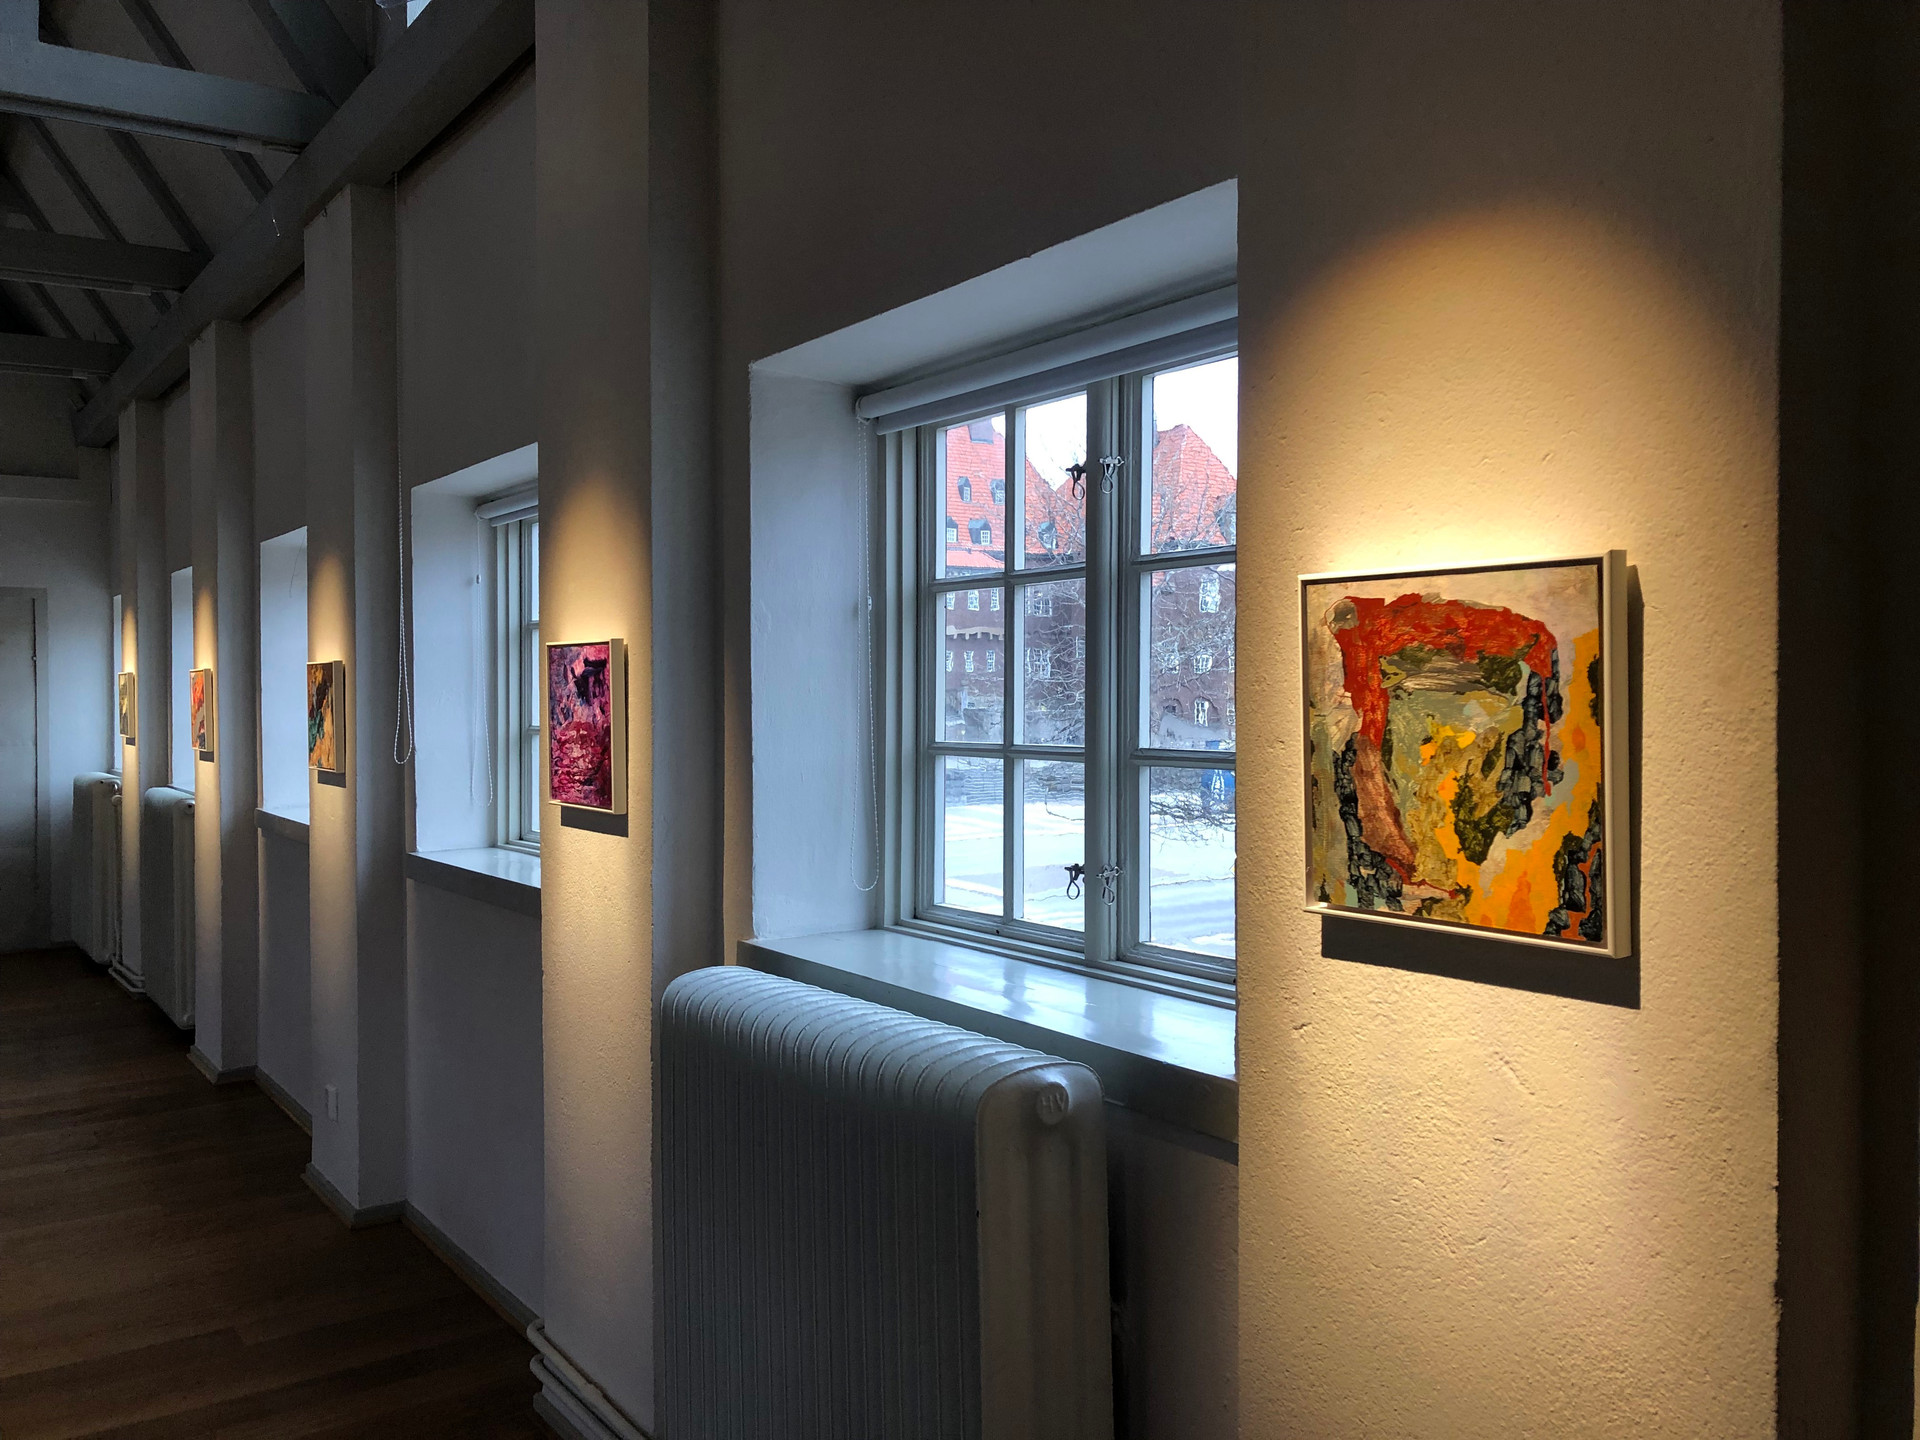 Solo exhibition at Ahlbergshallen, november 2019.